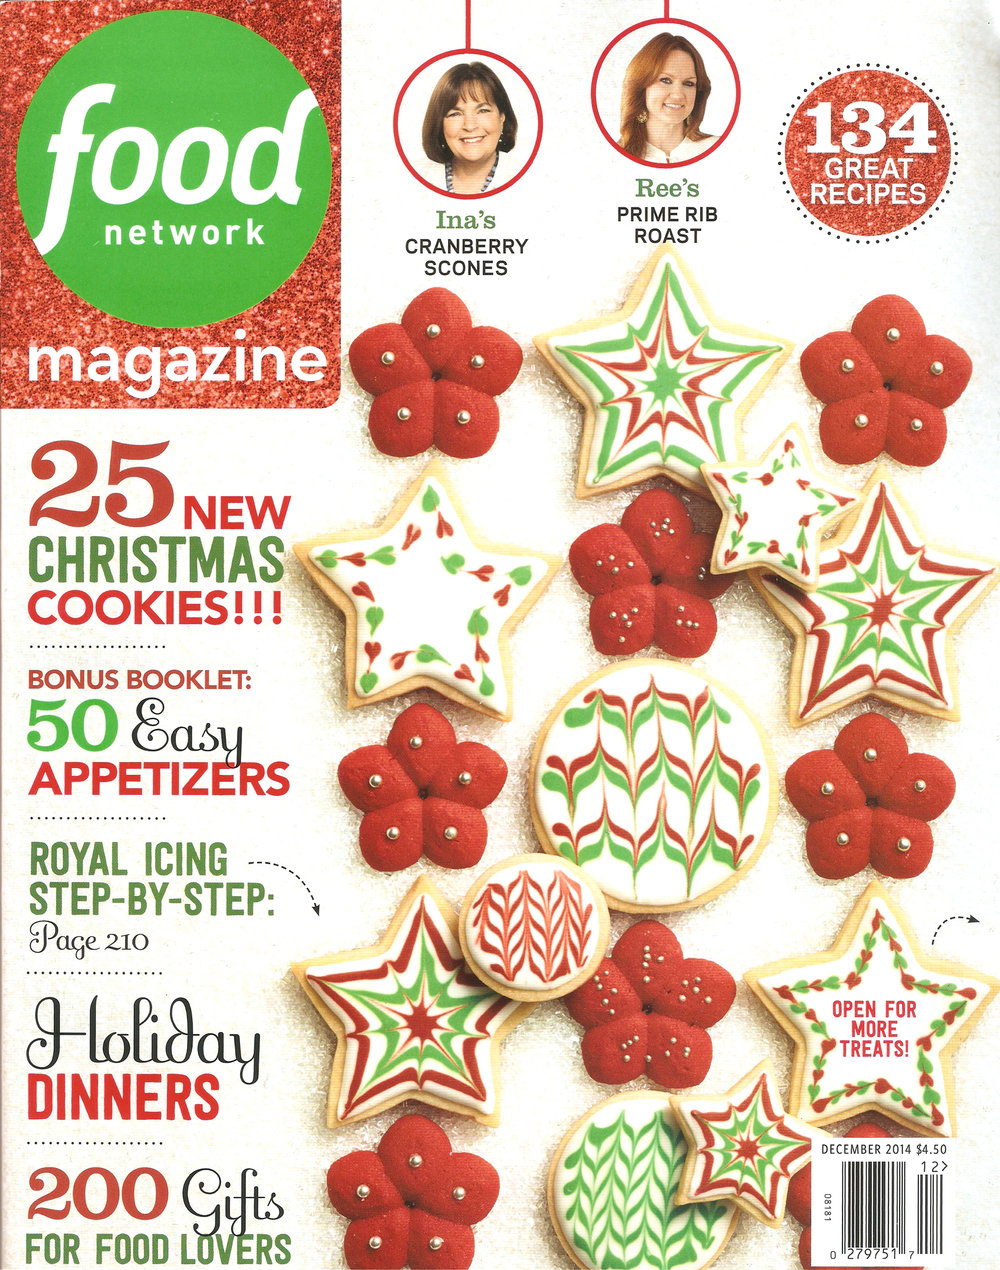 food_network_cover_12.2014_web.jpg